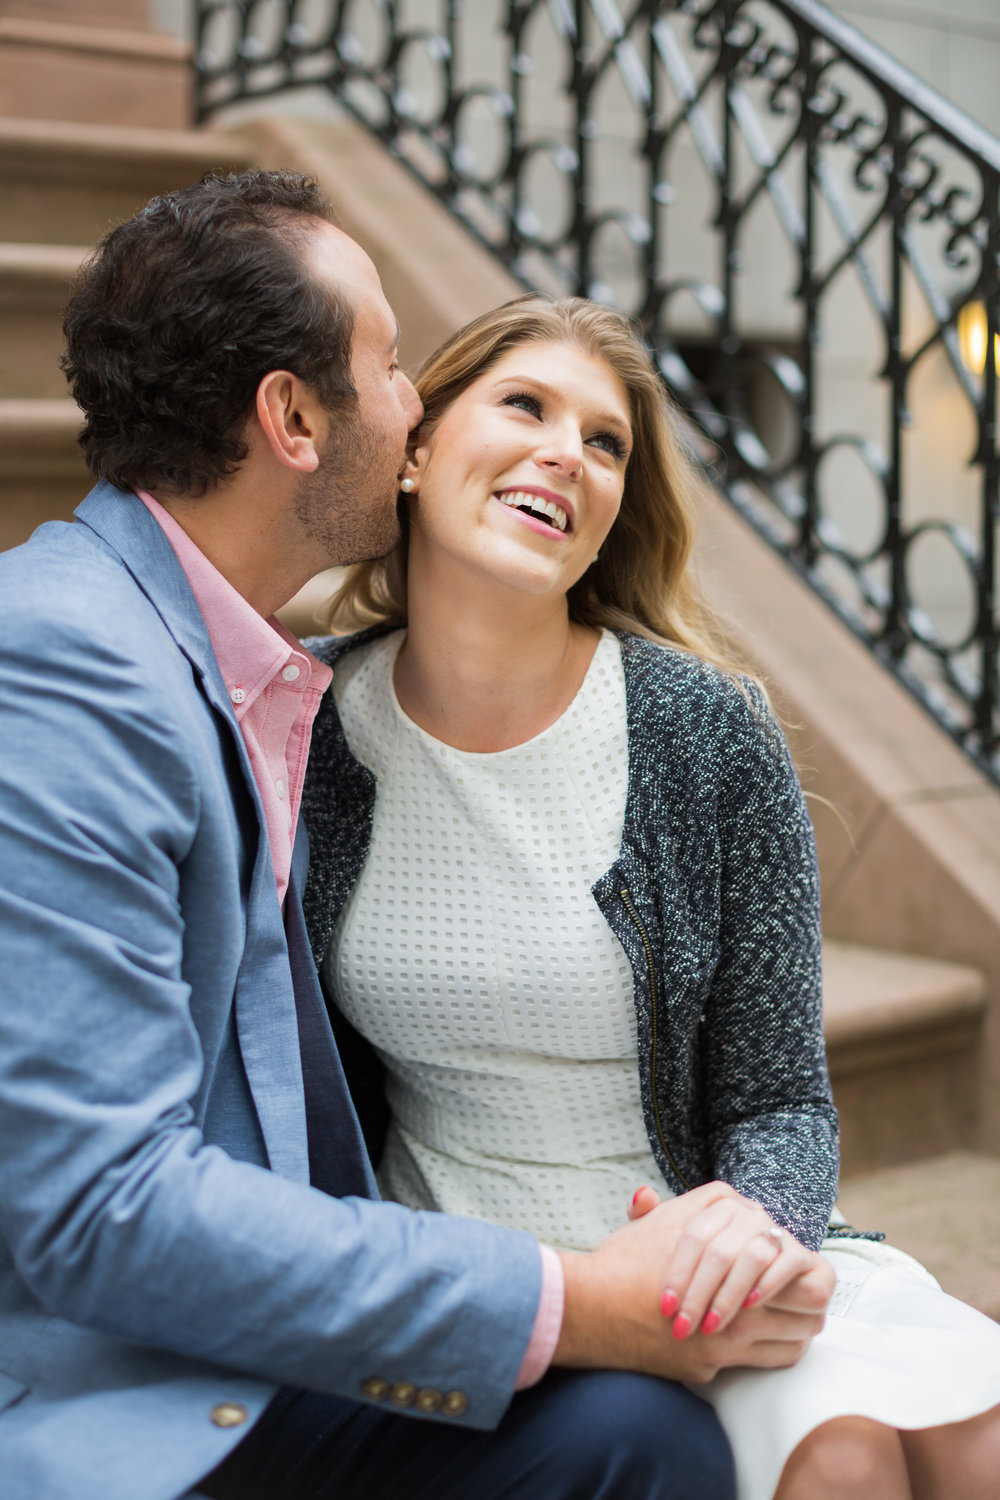 Melissa Kruse Photography - Courtney & JP Gramercy NYC Engagement Photos-116.jpg